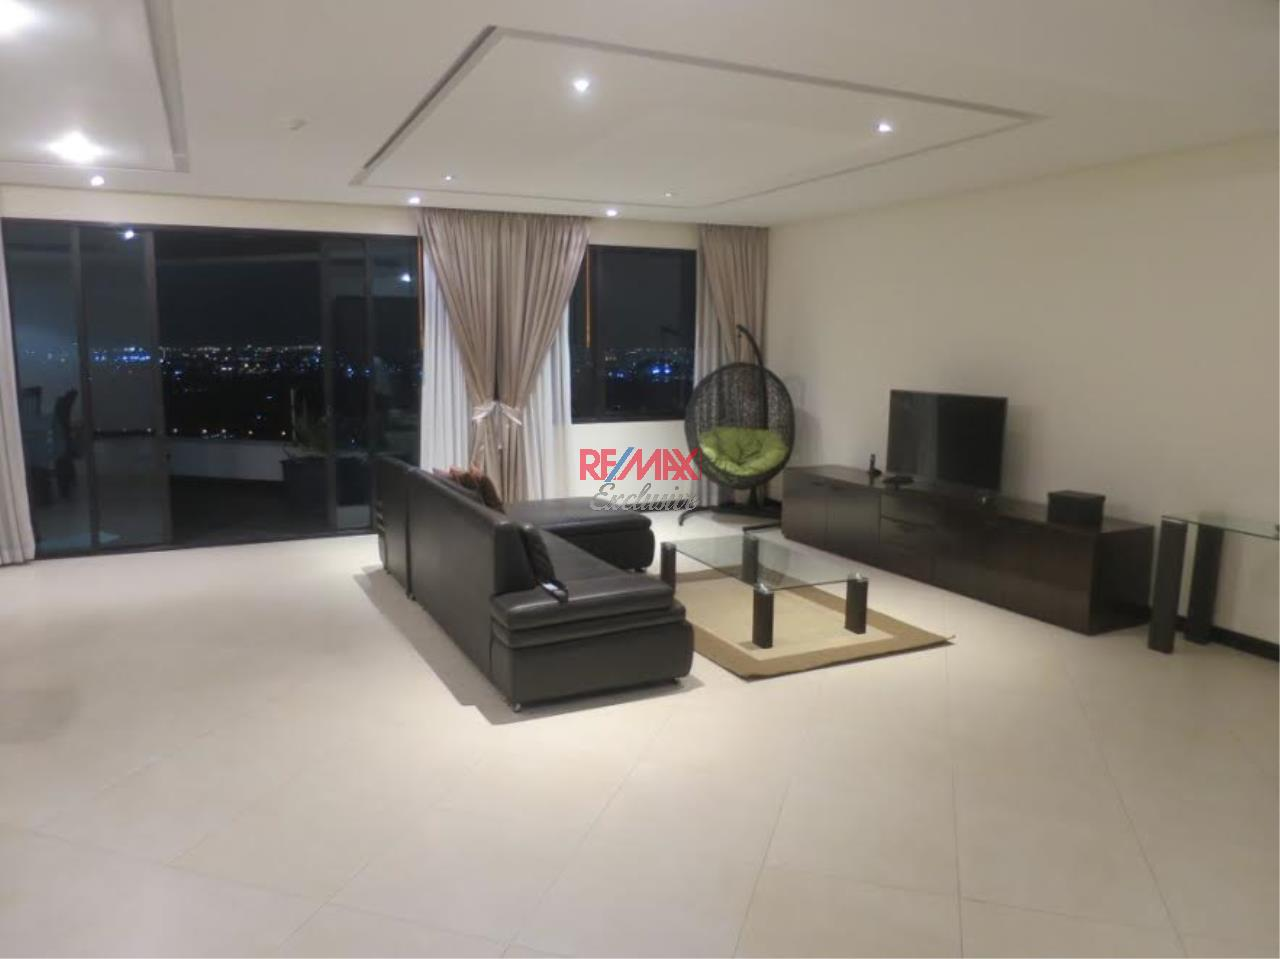 RE/MAX Exclusive Agency's Royal River Place Condo, 3 Bedrooms, 3 Bathrooms, Only For Sale 20,000,000 THB 2